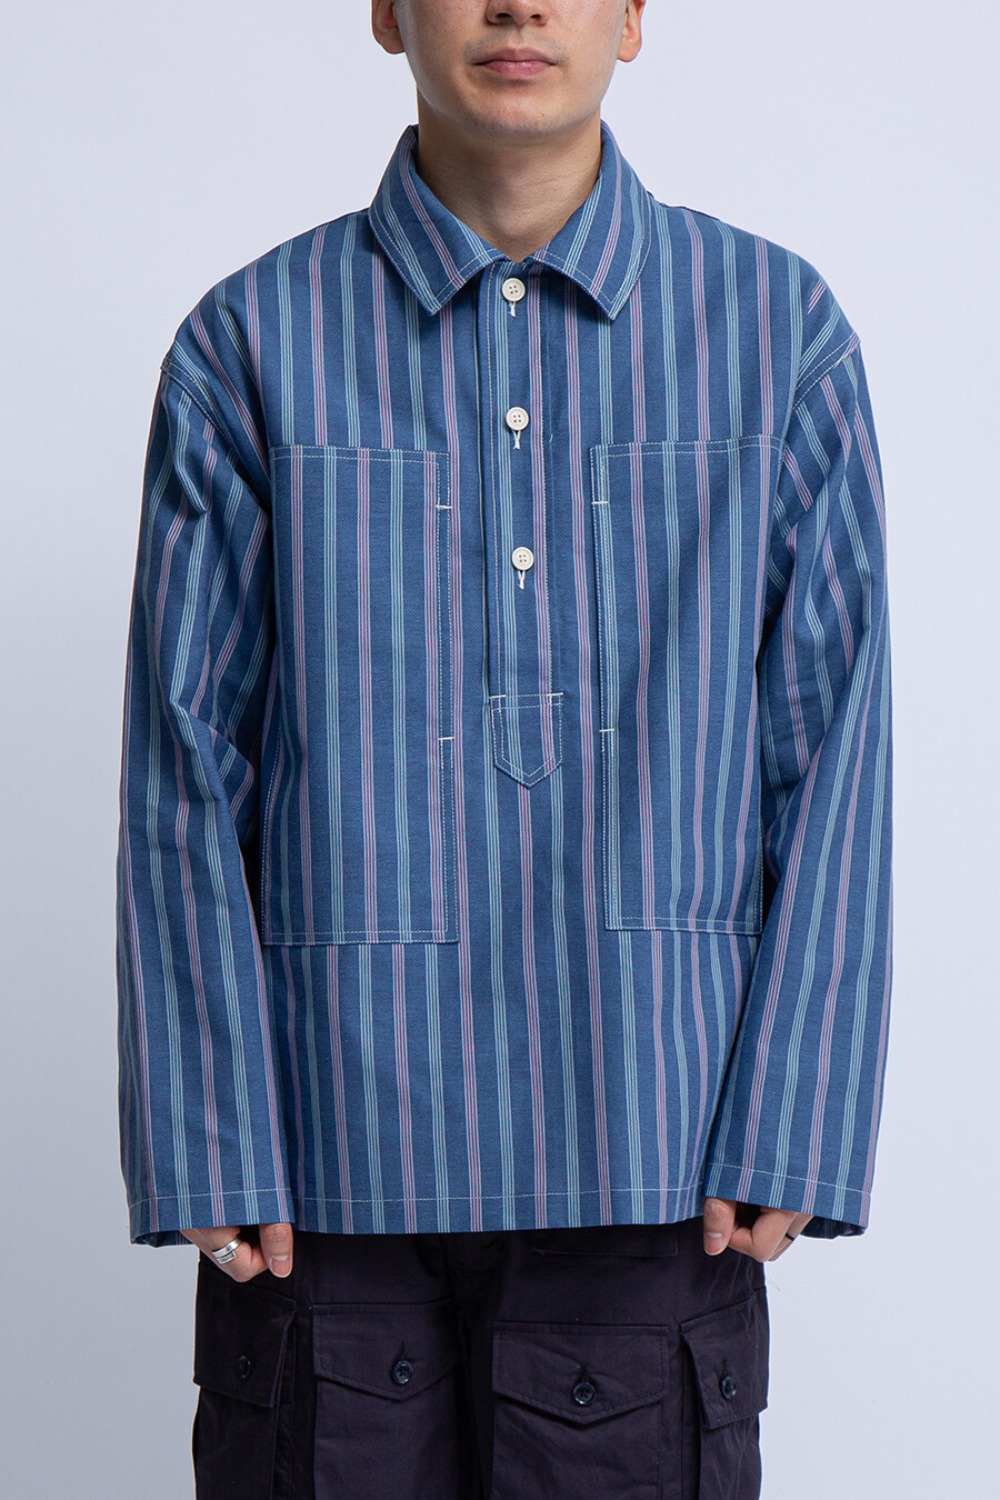 ARMY SHIRT BLUE MULTI WORKERS STRIPE